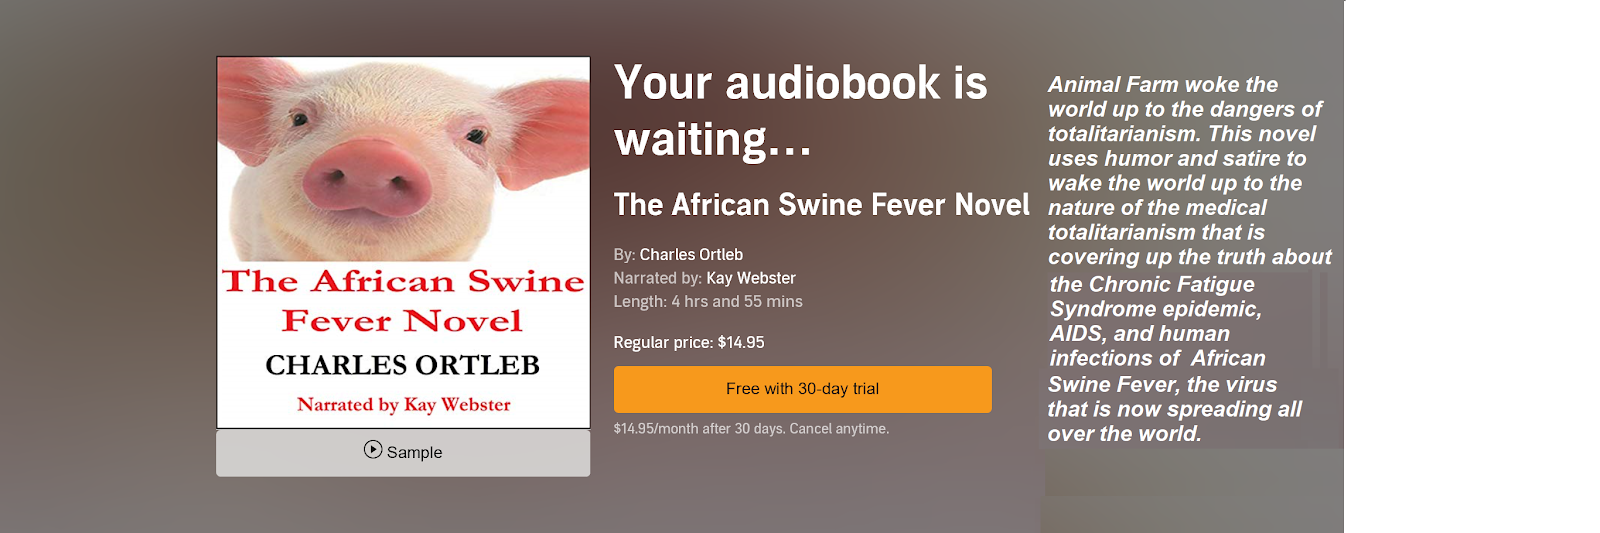 African Swine Fever Novel Audible